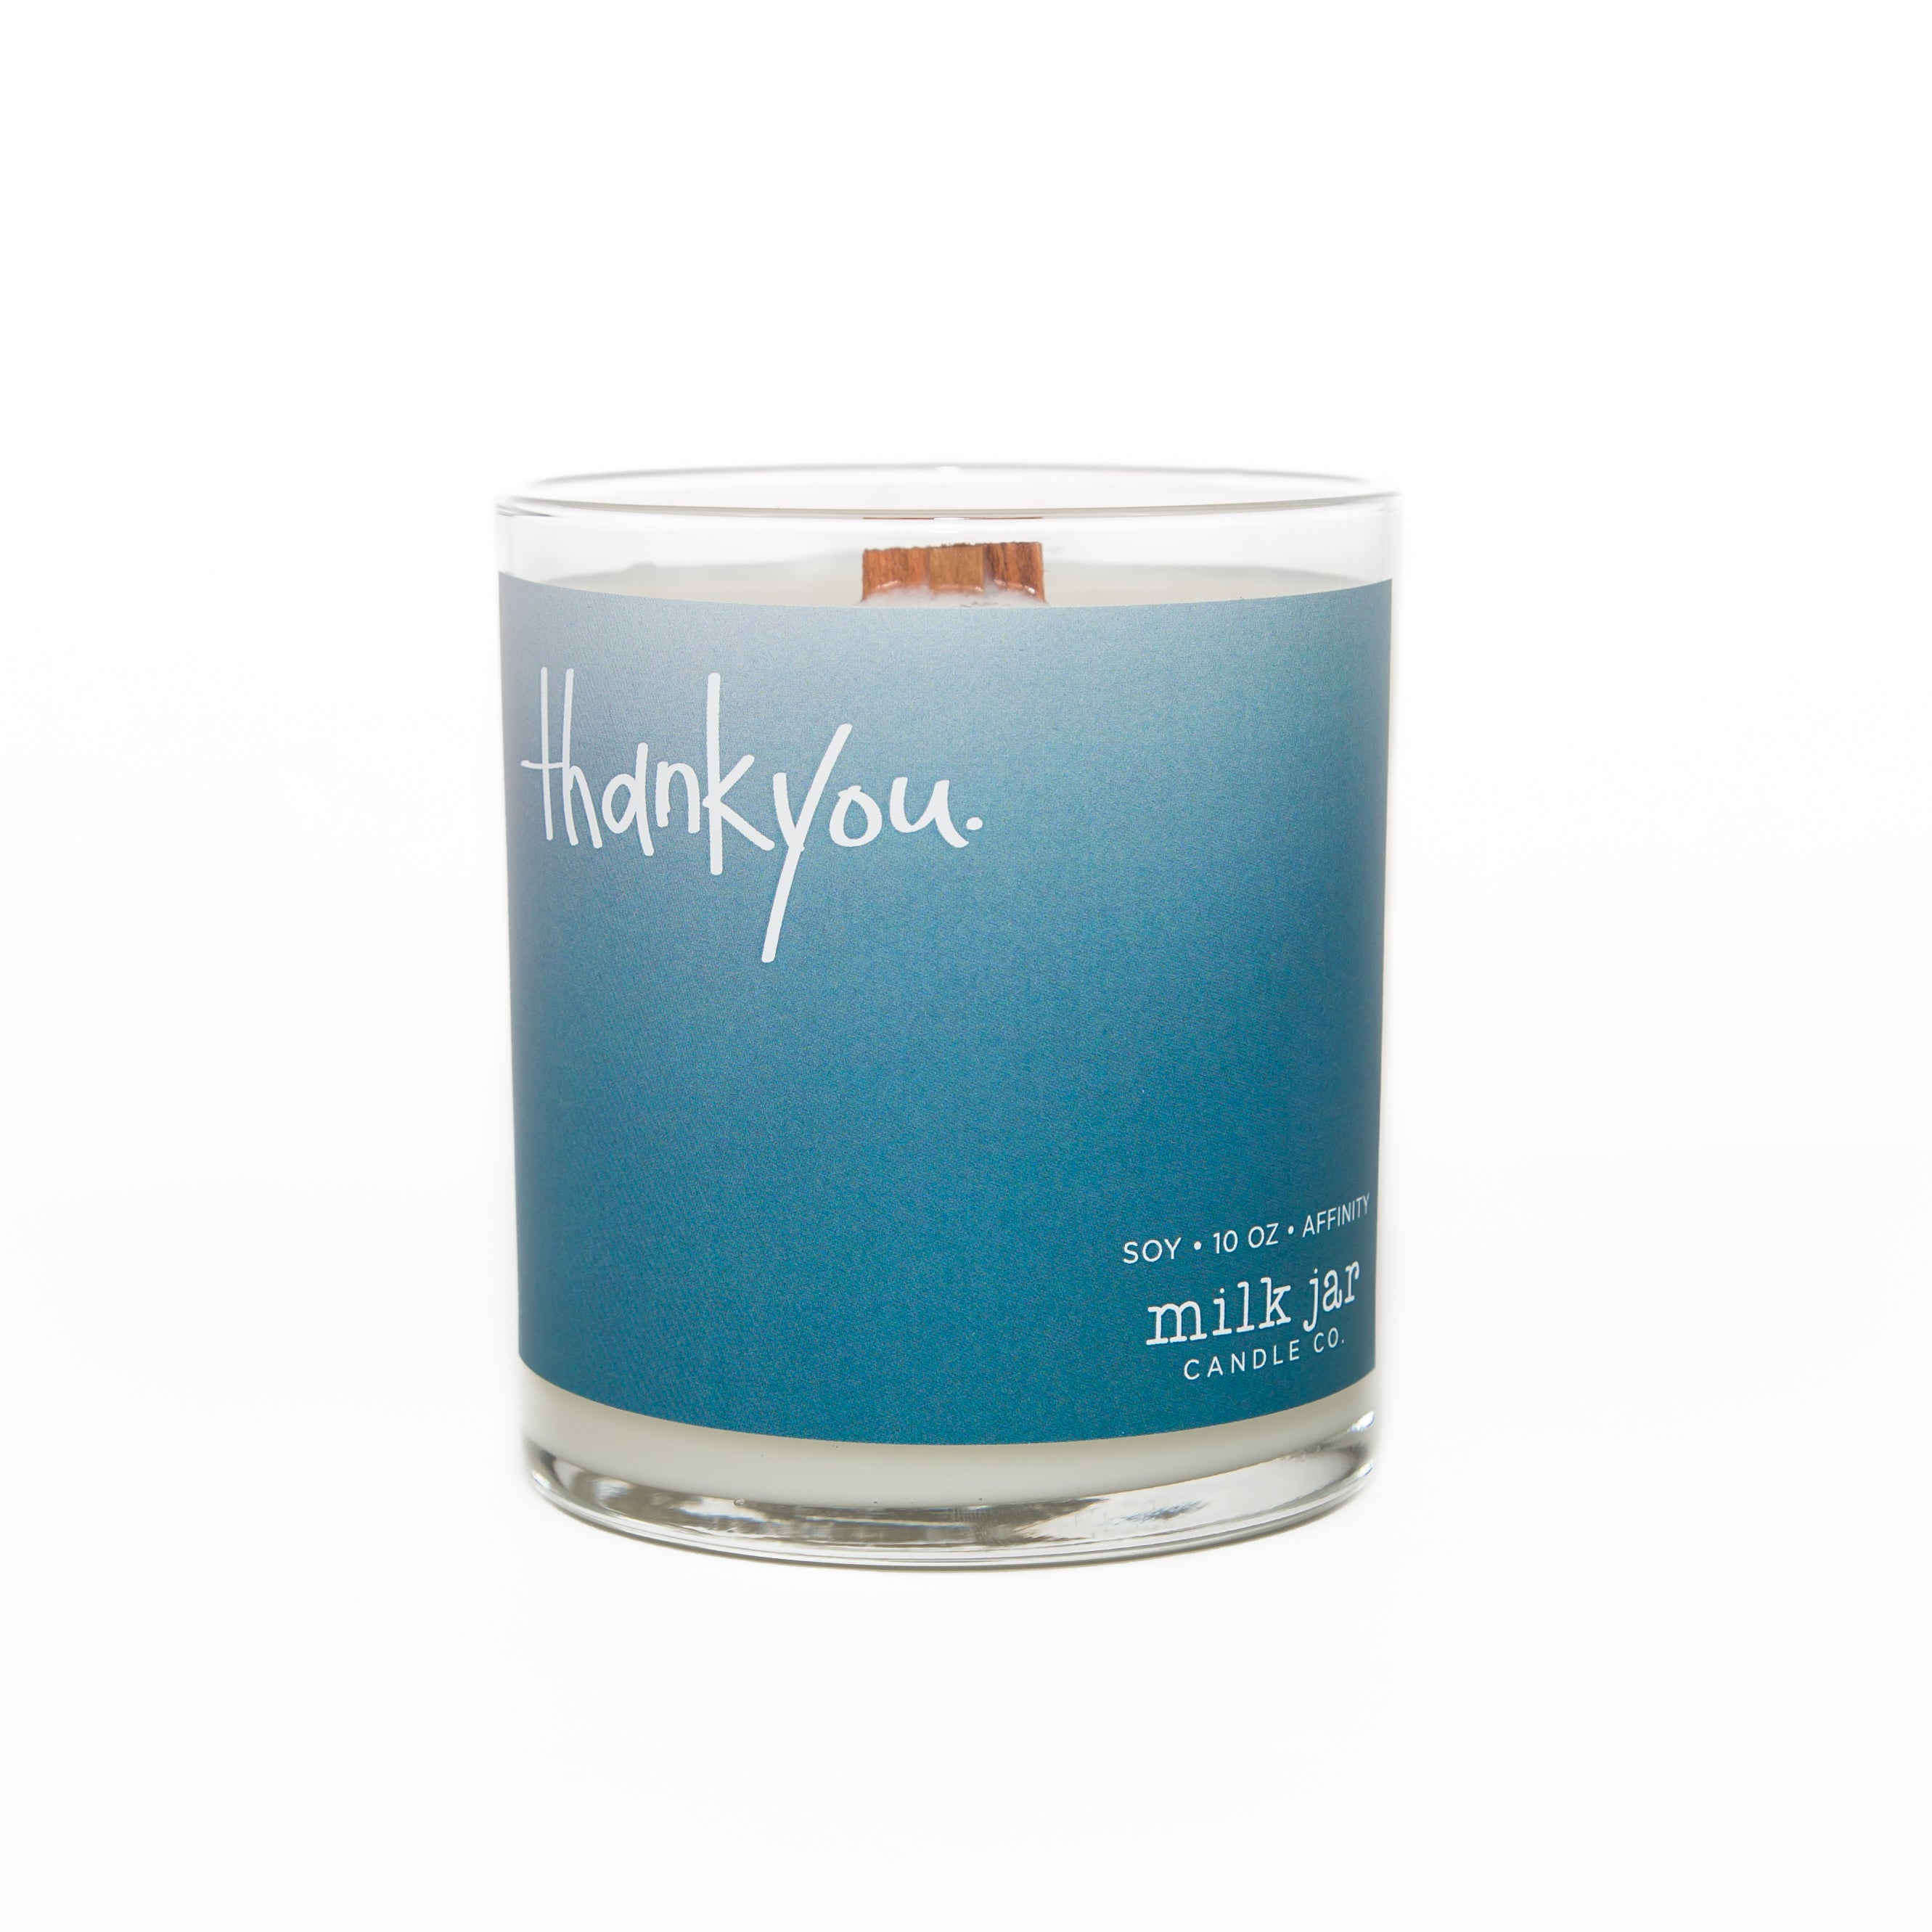 AFFINITY - 10 OZ SOY CANDLE - thankyouapparel